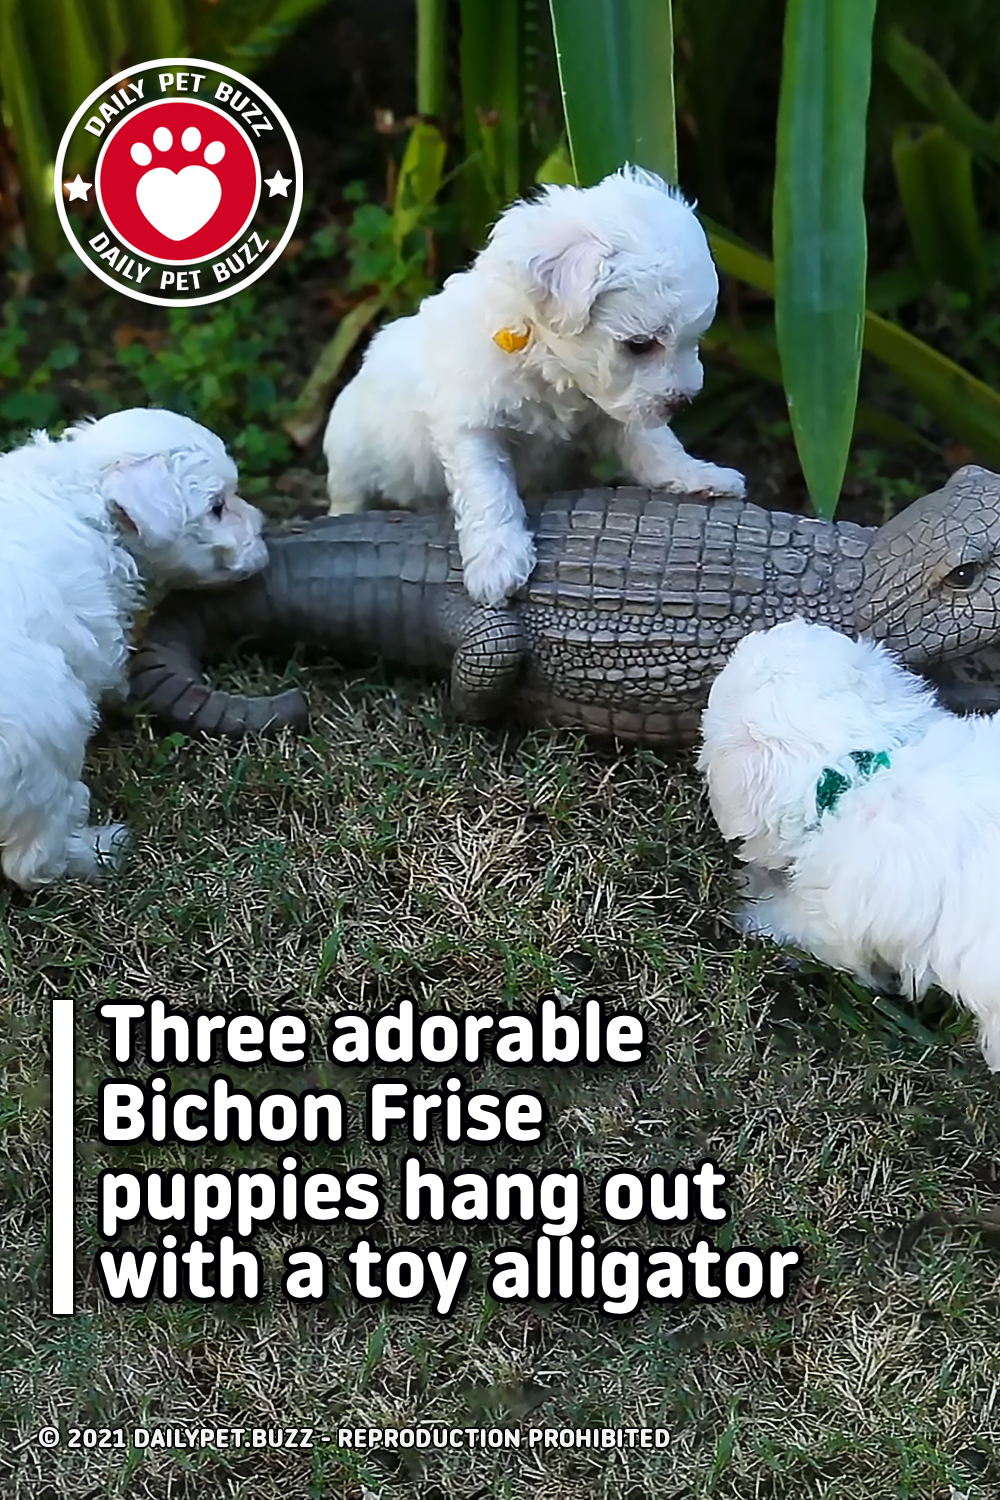 Three adorable Bichon Frise puppies hang out with a toy alligator